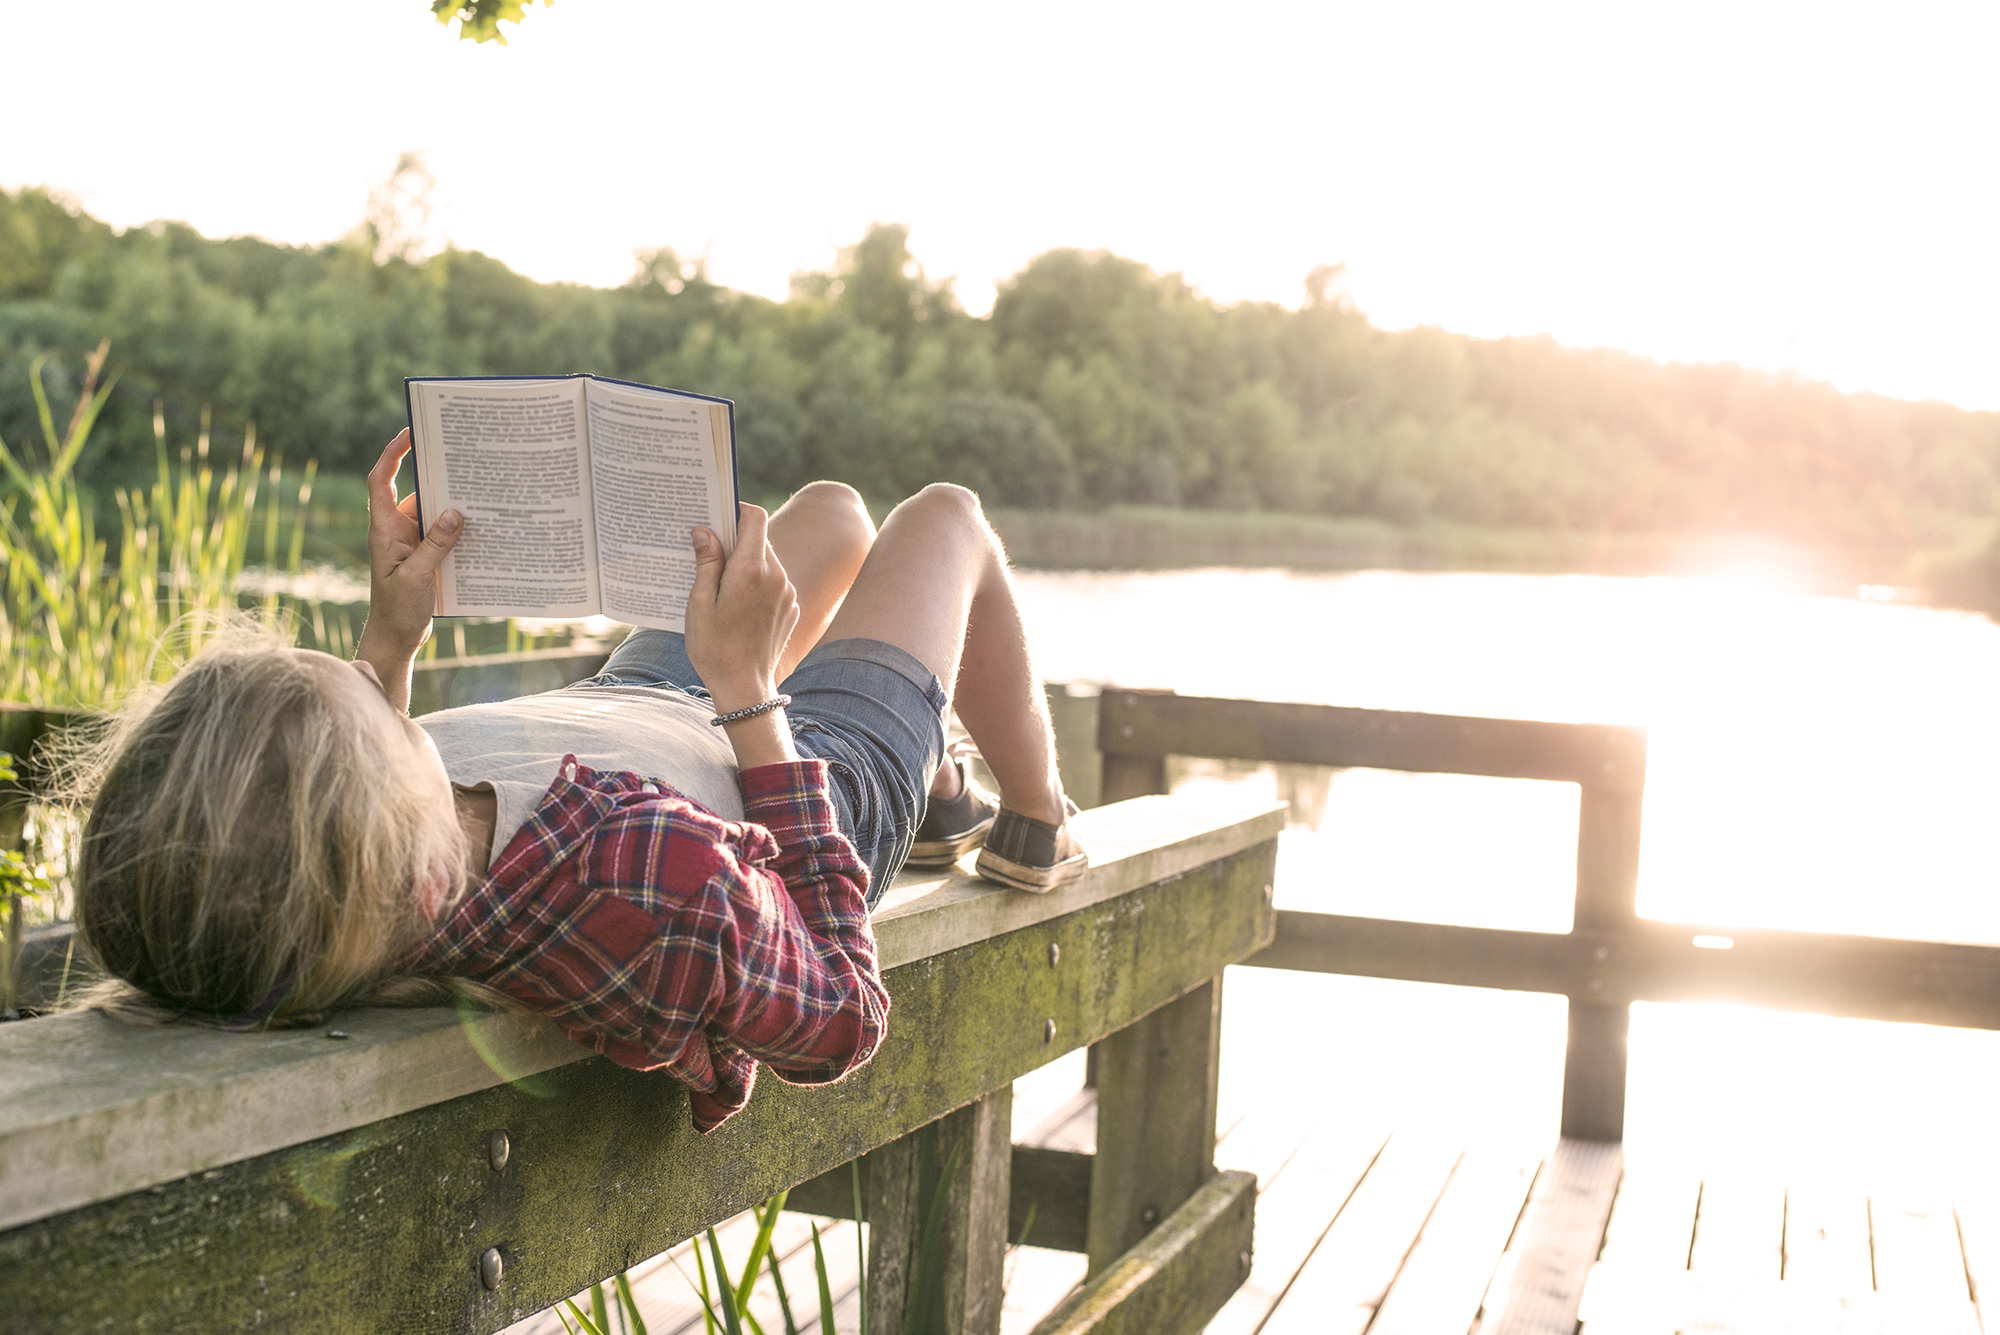 Young girl reading a book while lying on her back on a wooden beam at a wooden dock at the lake.